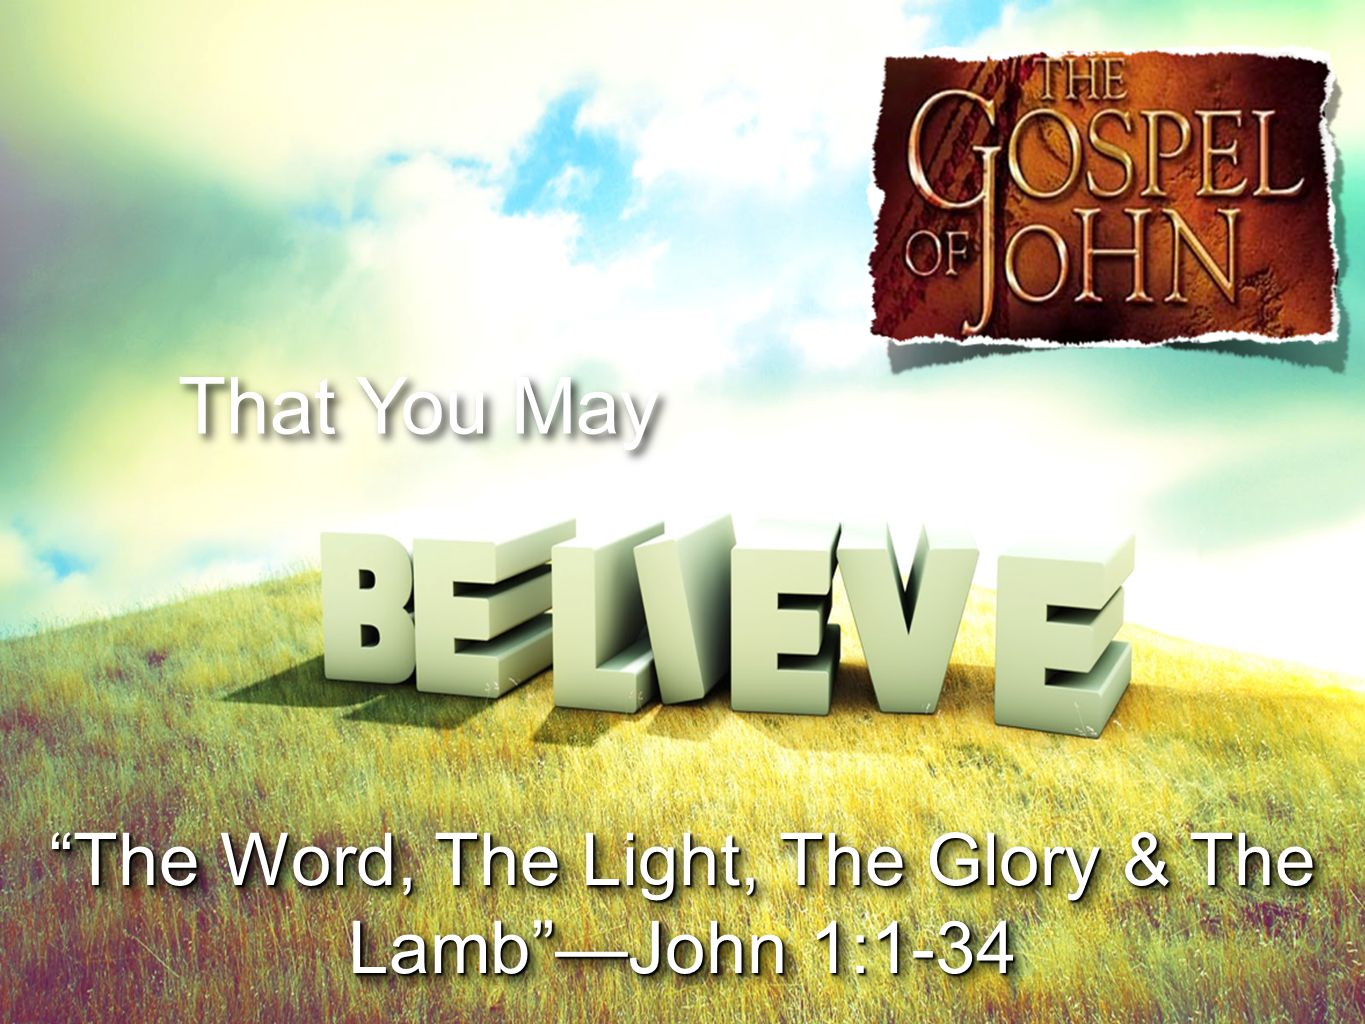 That You May The Word, The Light, The Glory & The Lamb —John 1:1-34